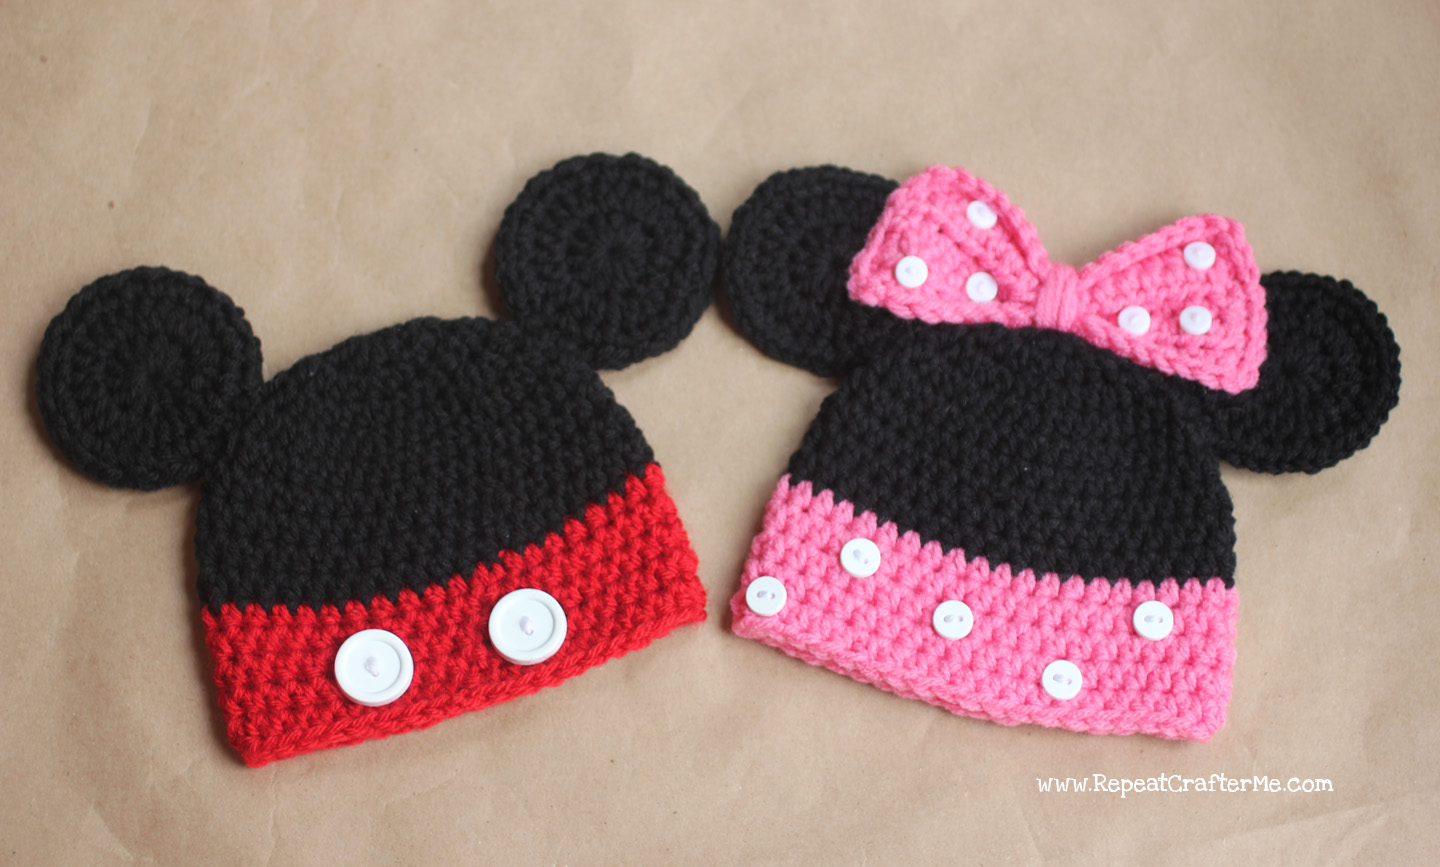 Crochet Stitches Baby Hats : year olds new favorite show and the inspiration for these crochet hats ...